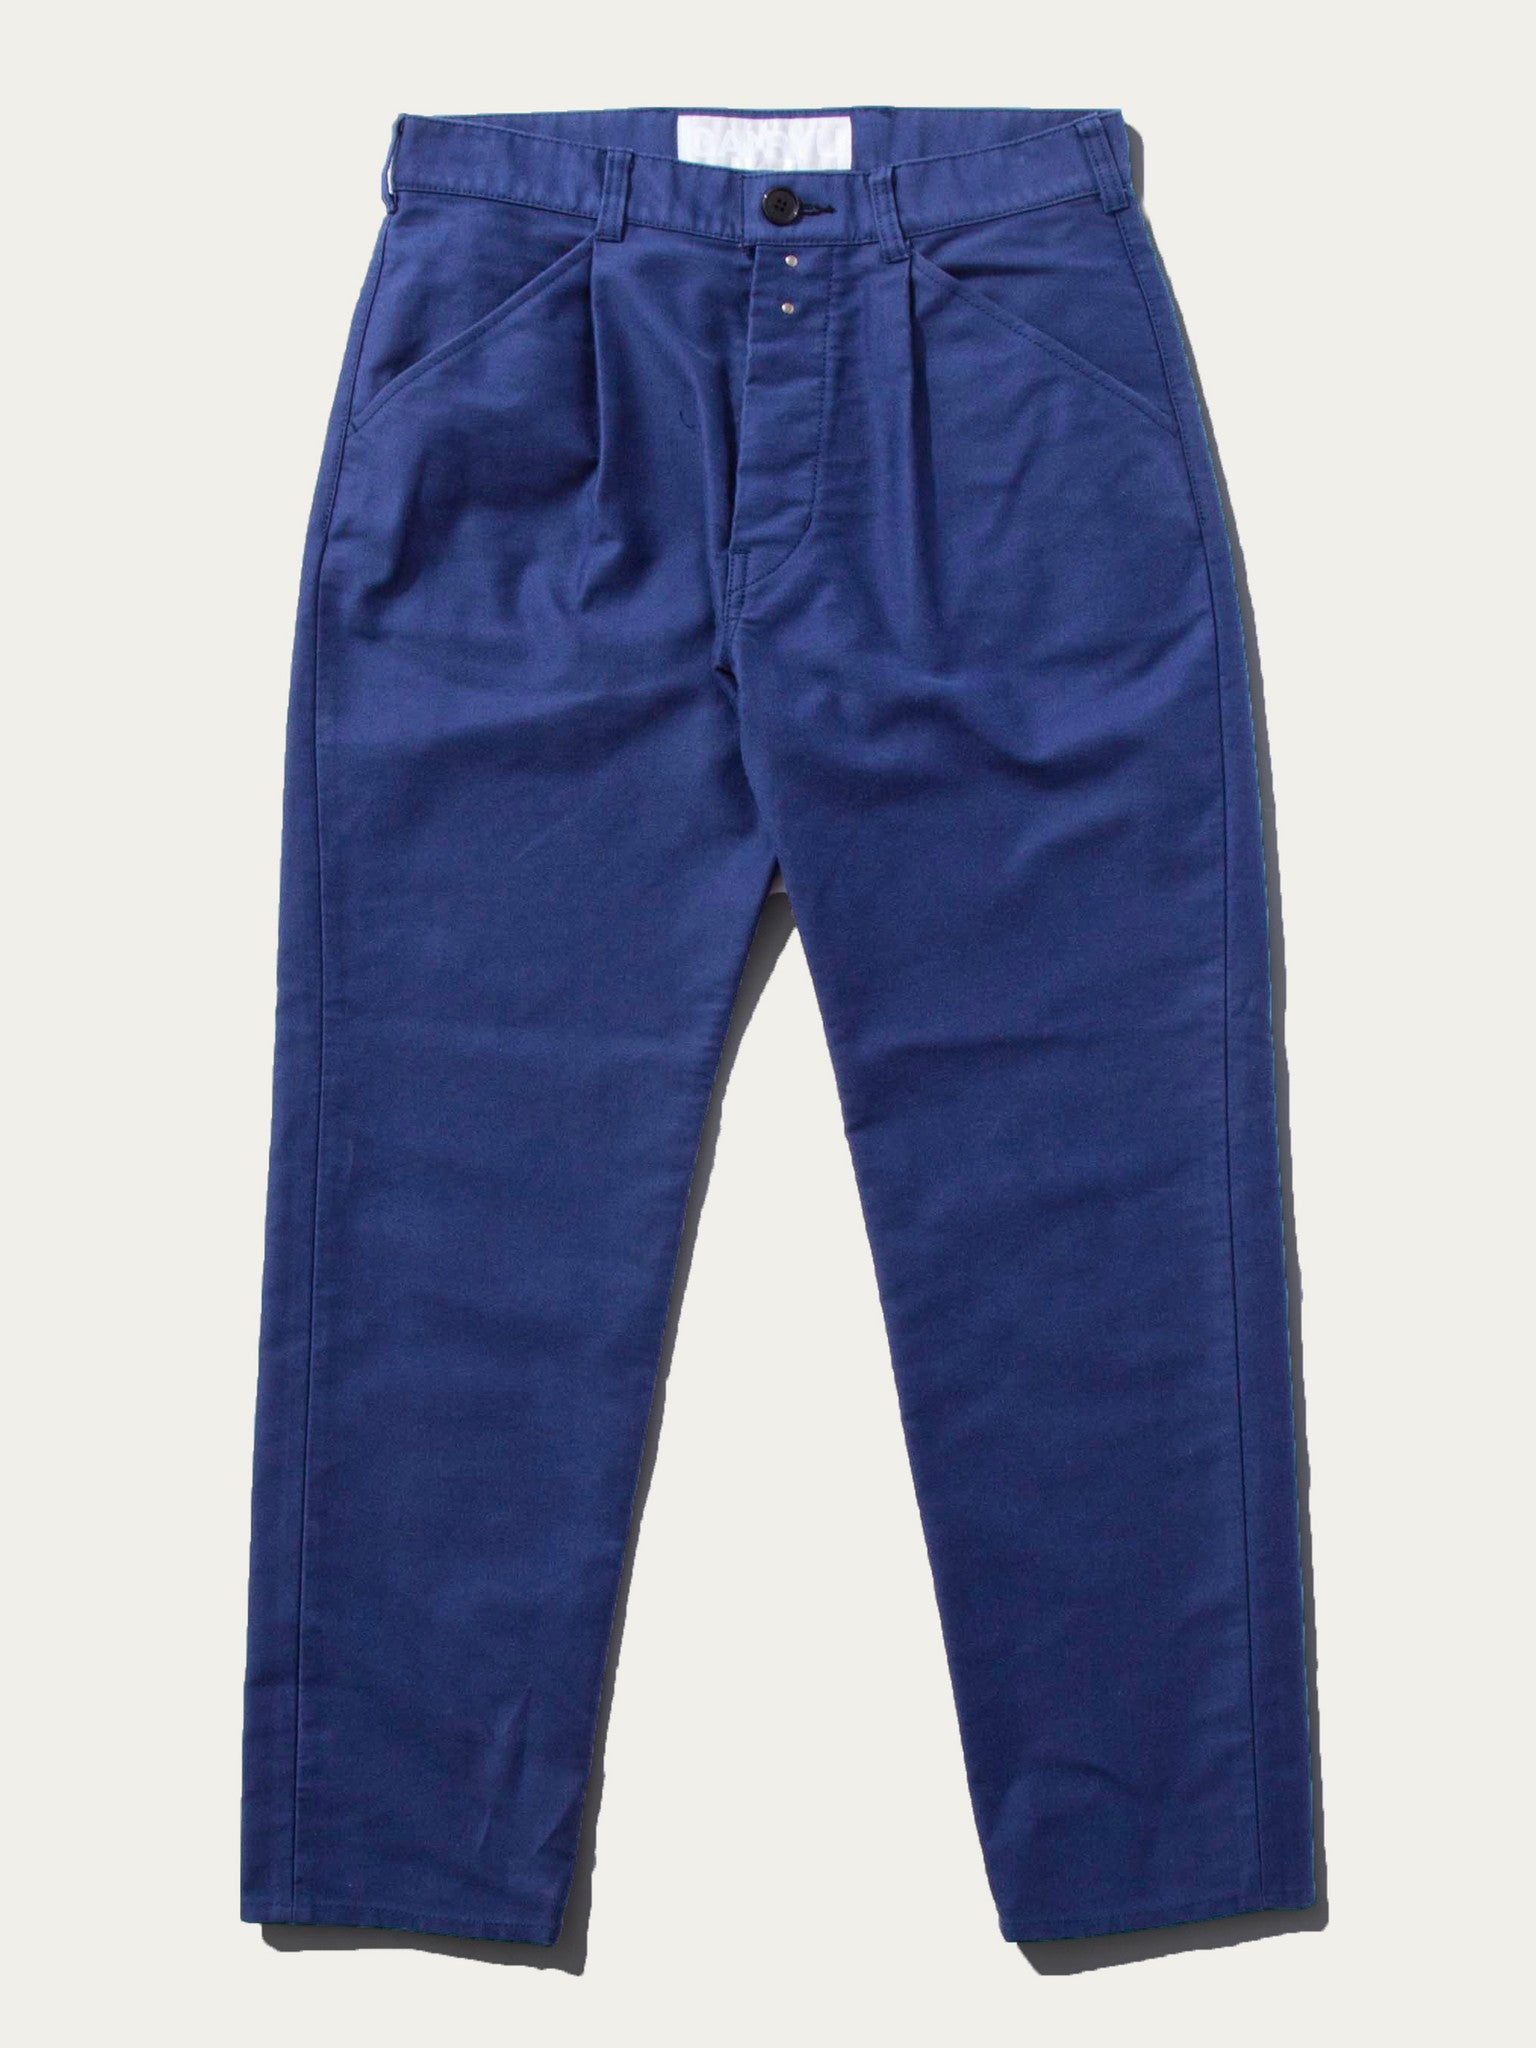 Navy Work Trousers 1